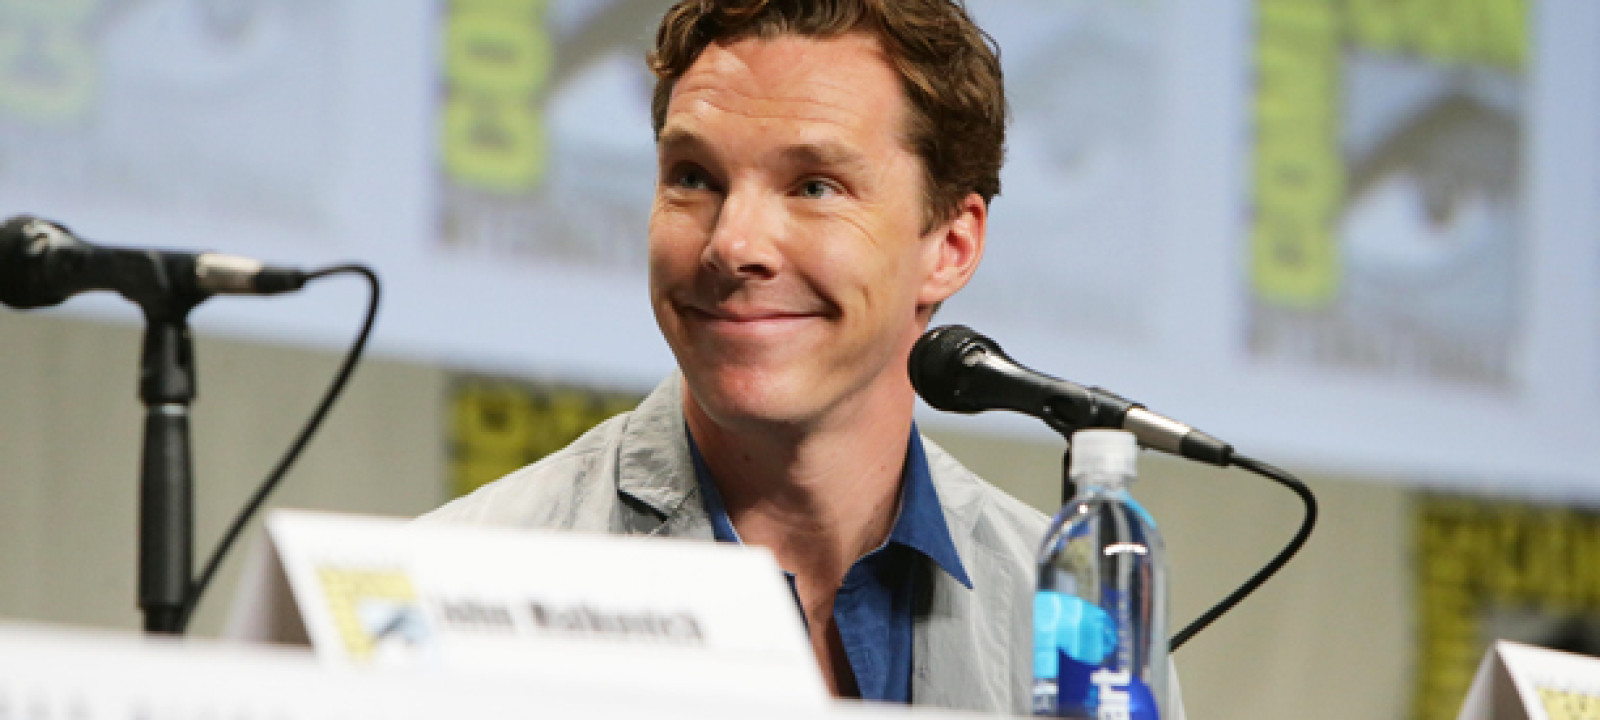 612x344_cumberbatch_sdcc